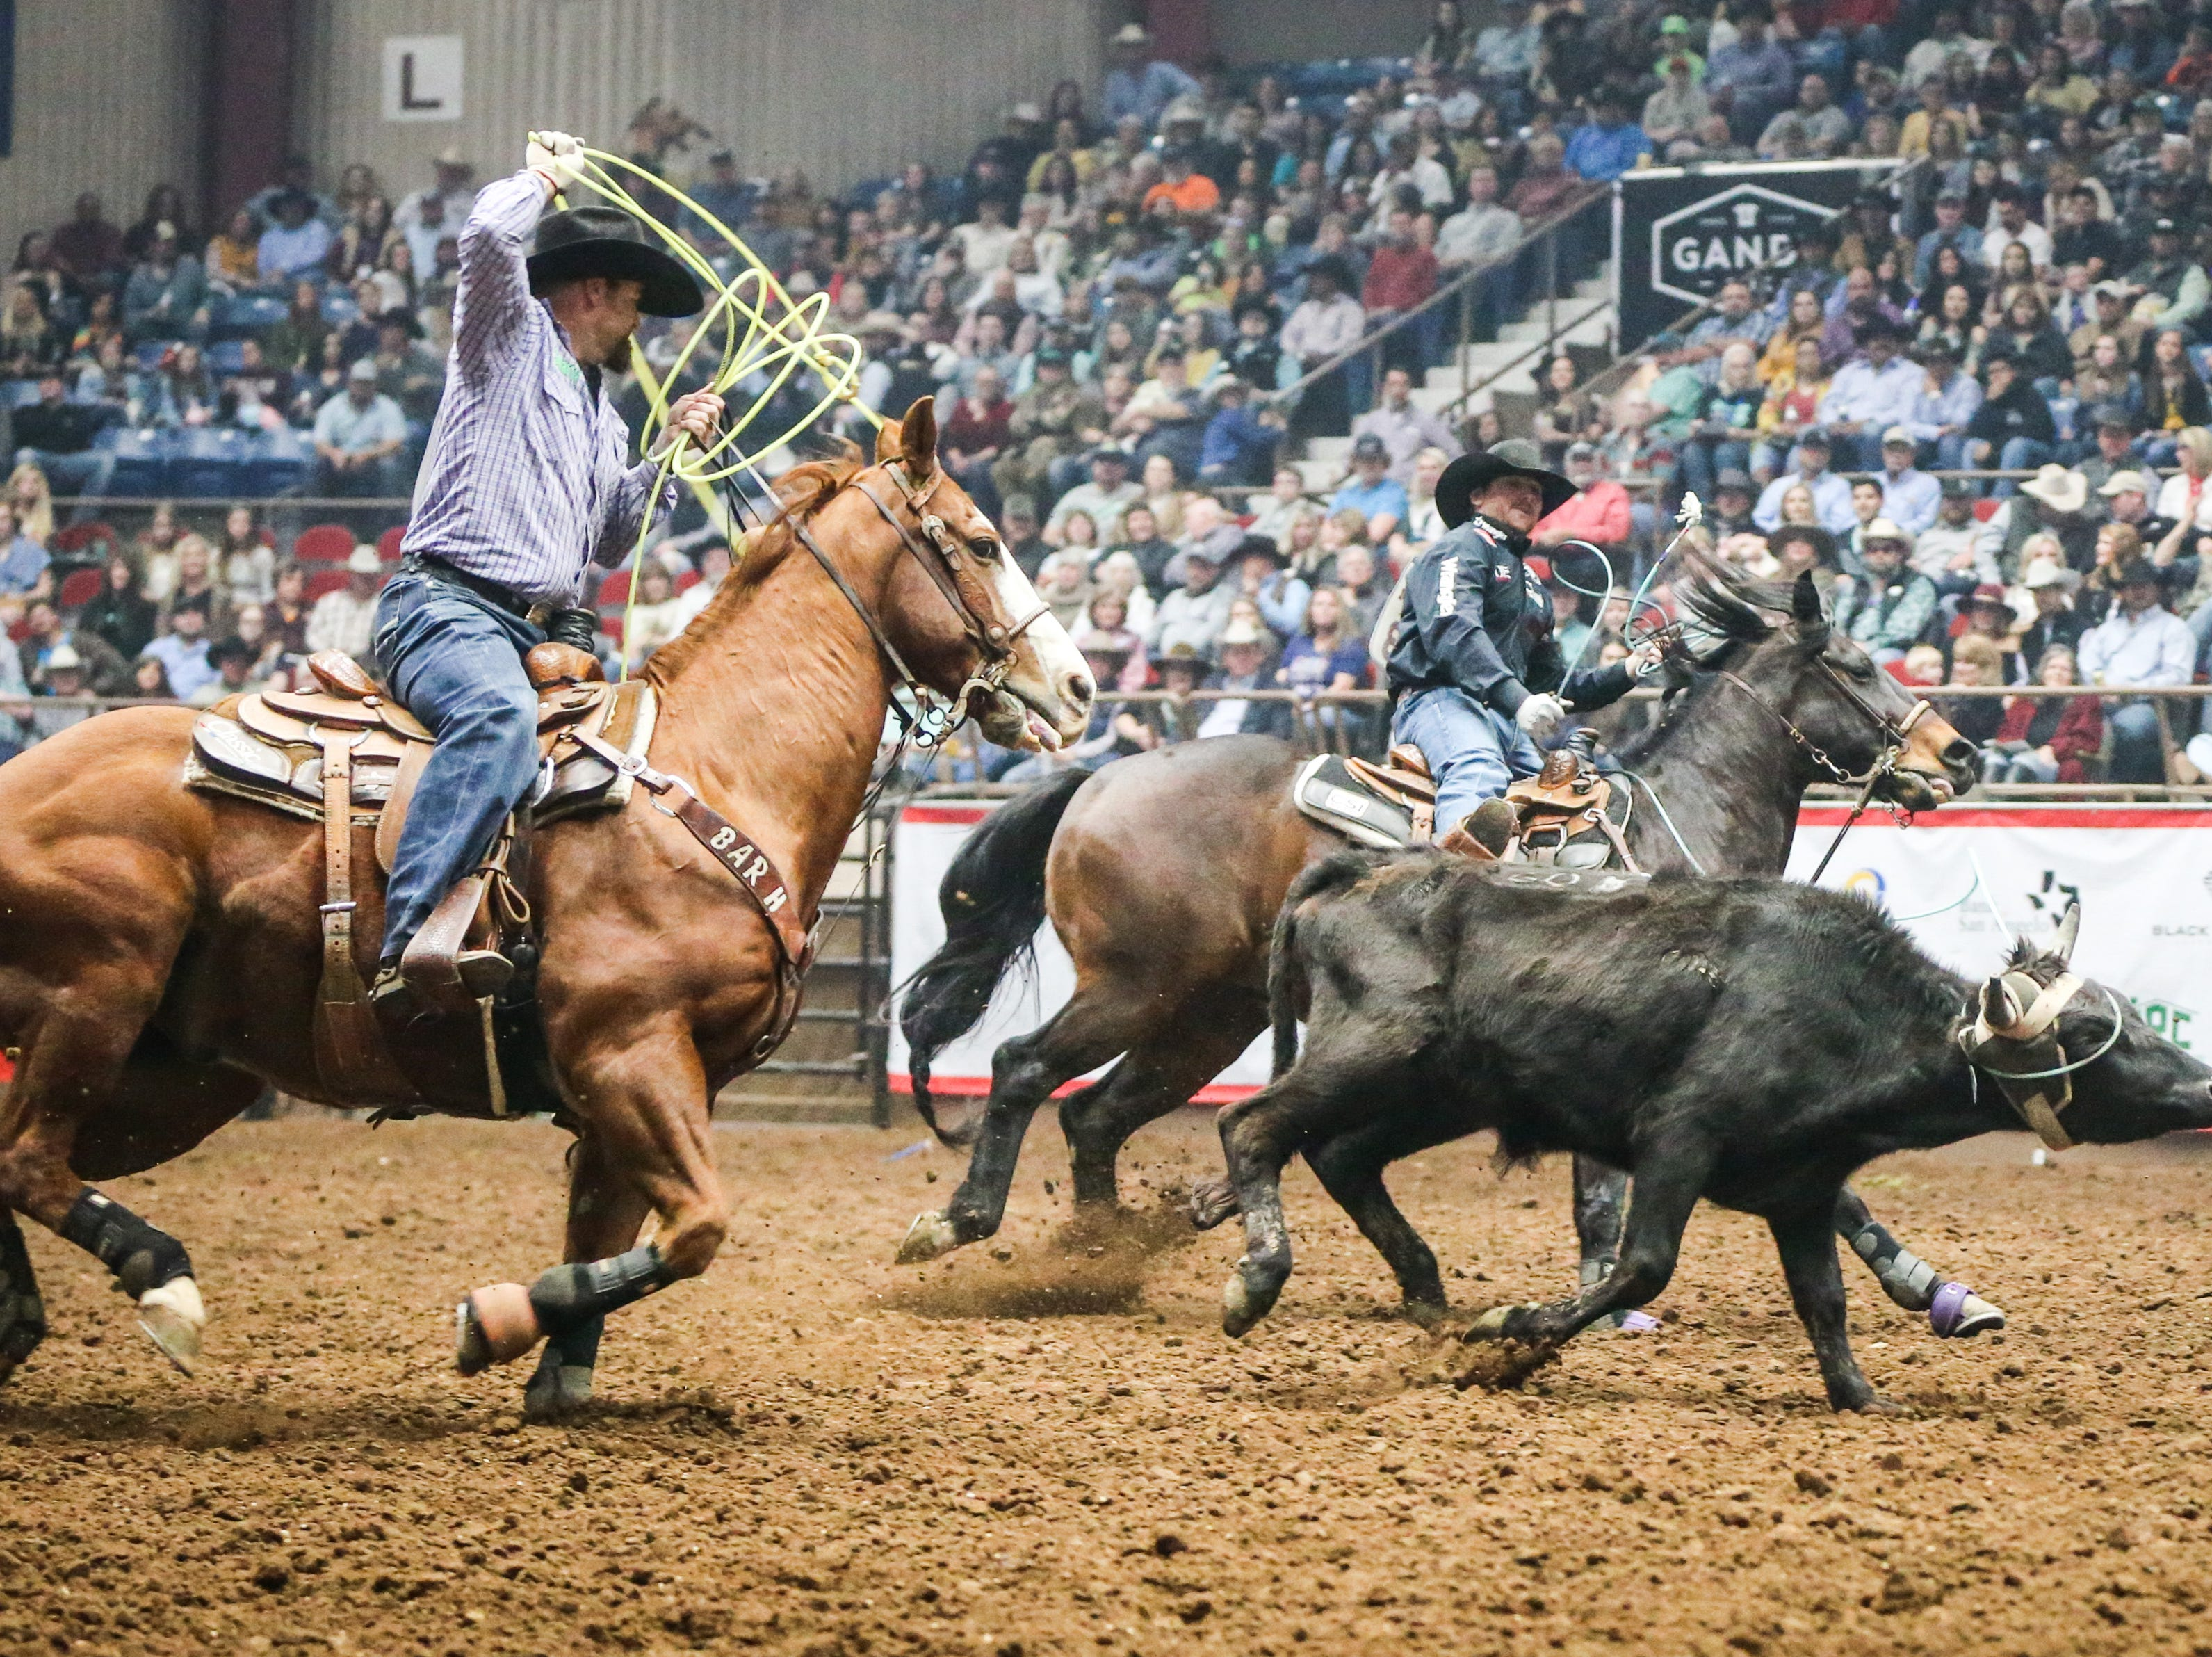 Tyler Wade and Ryan Motes team rope during Cinch Chute Out Saturday, Feb. 16, 2019, at Foster Communications Coliseum.